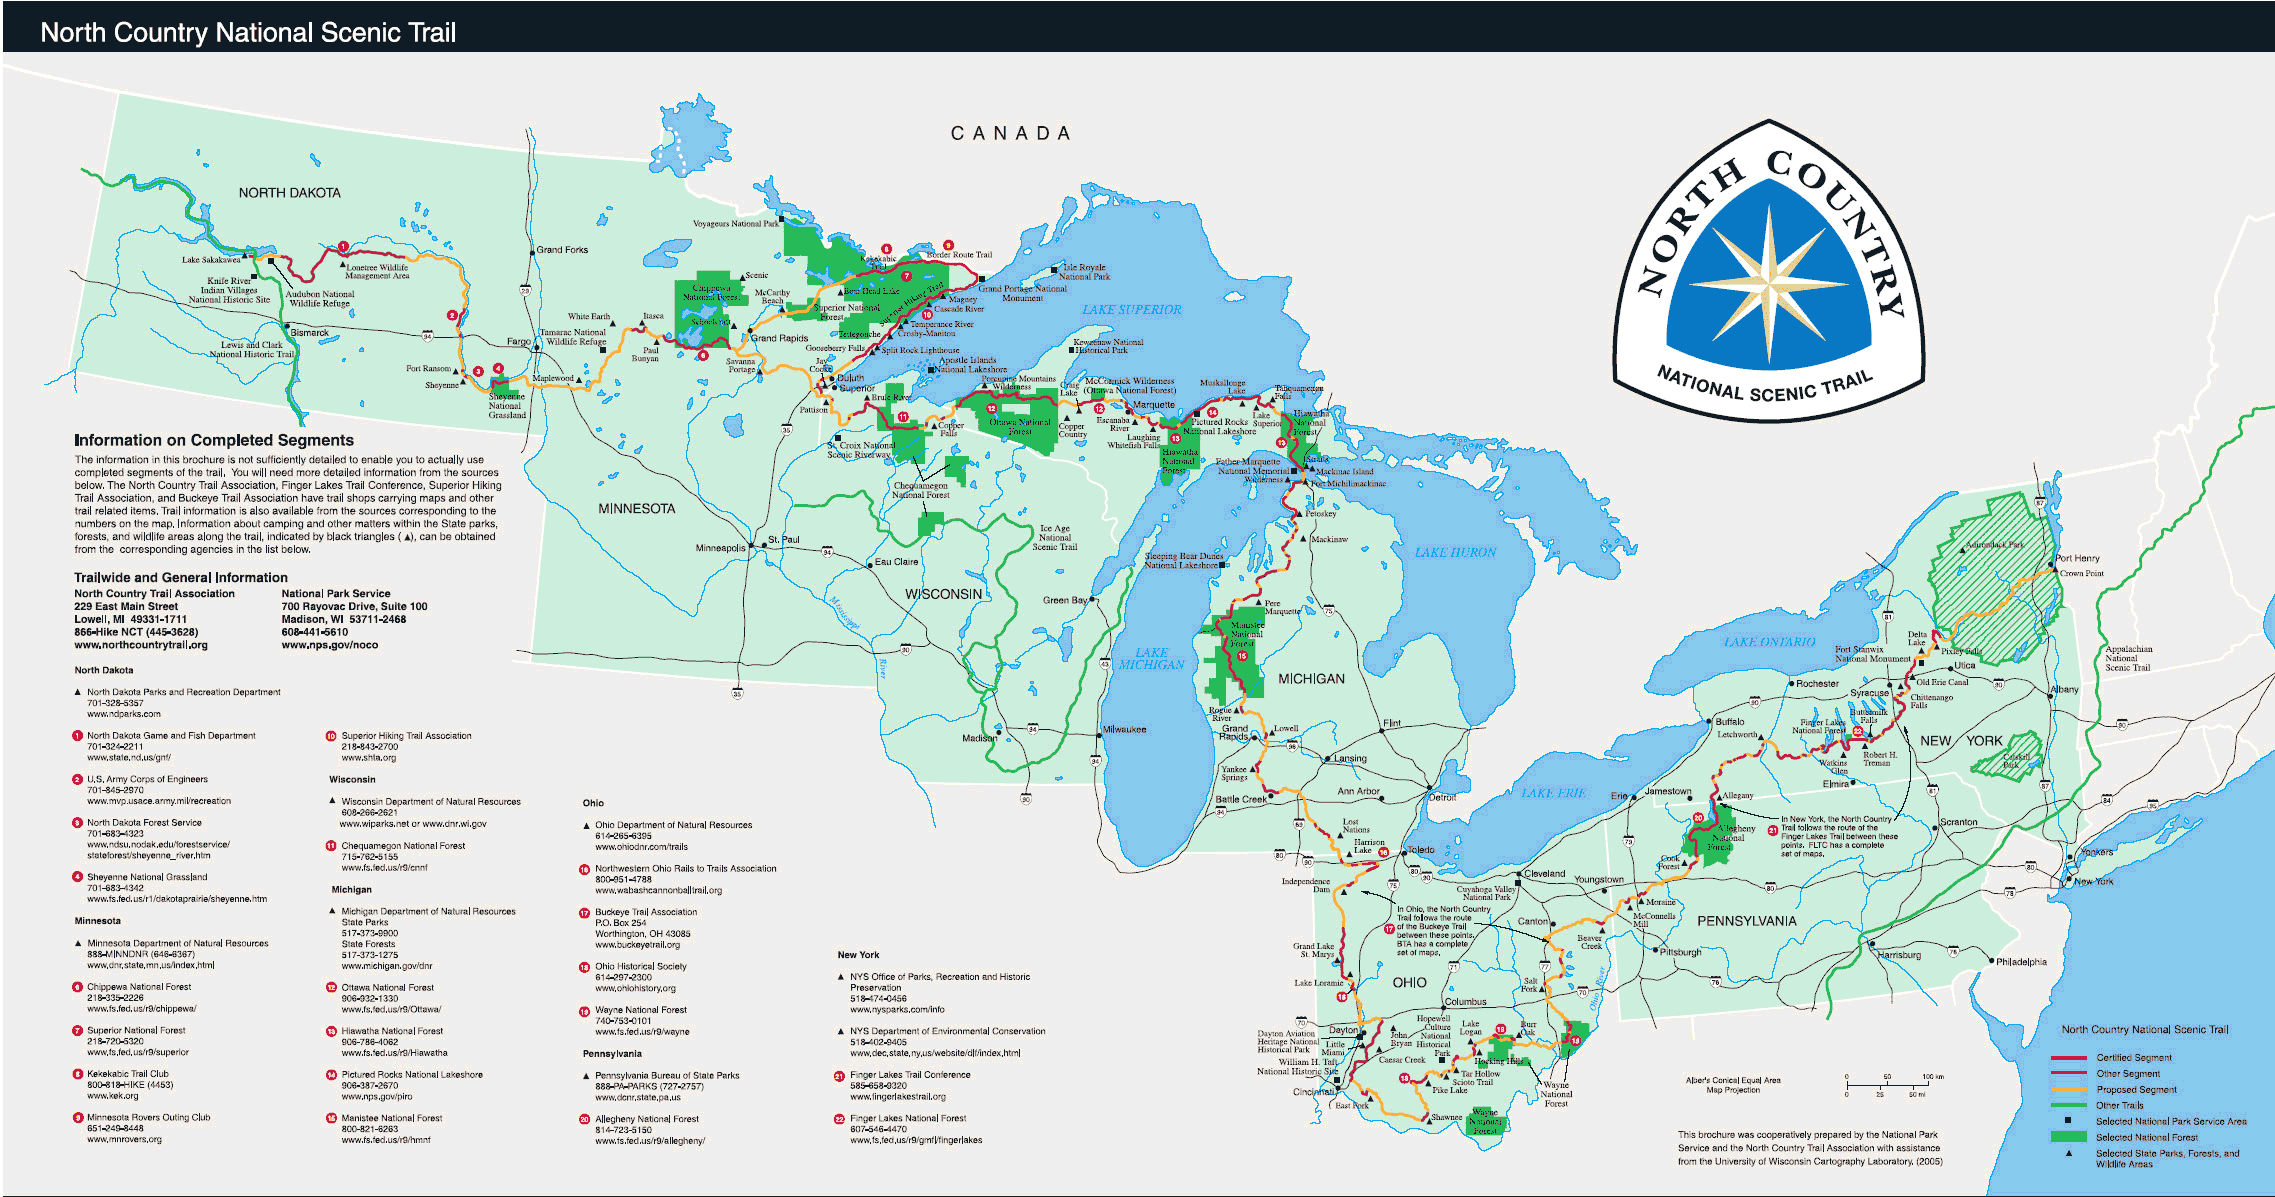 evan frost  mpr news map of the north country national scenic trail. north country trail the minnesota national park you've never